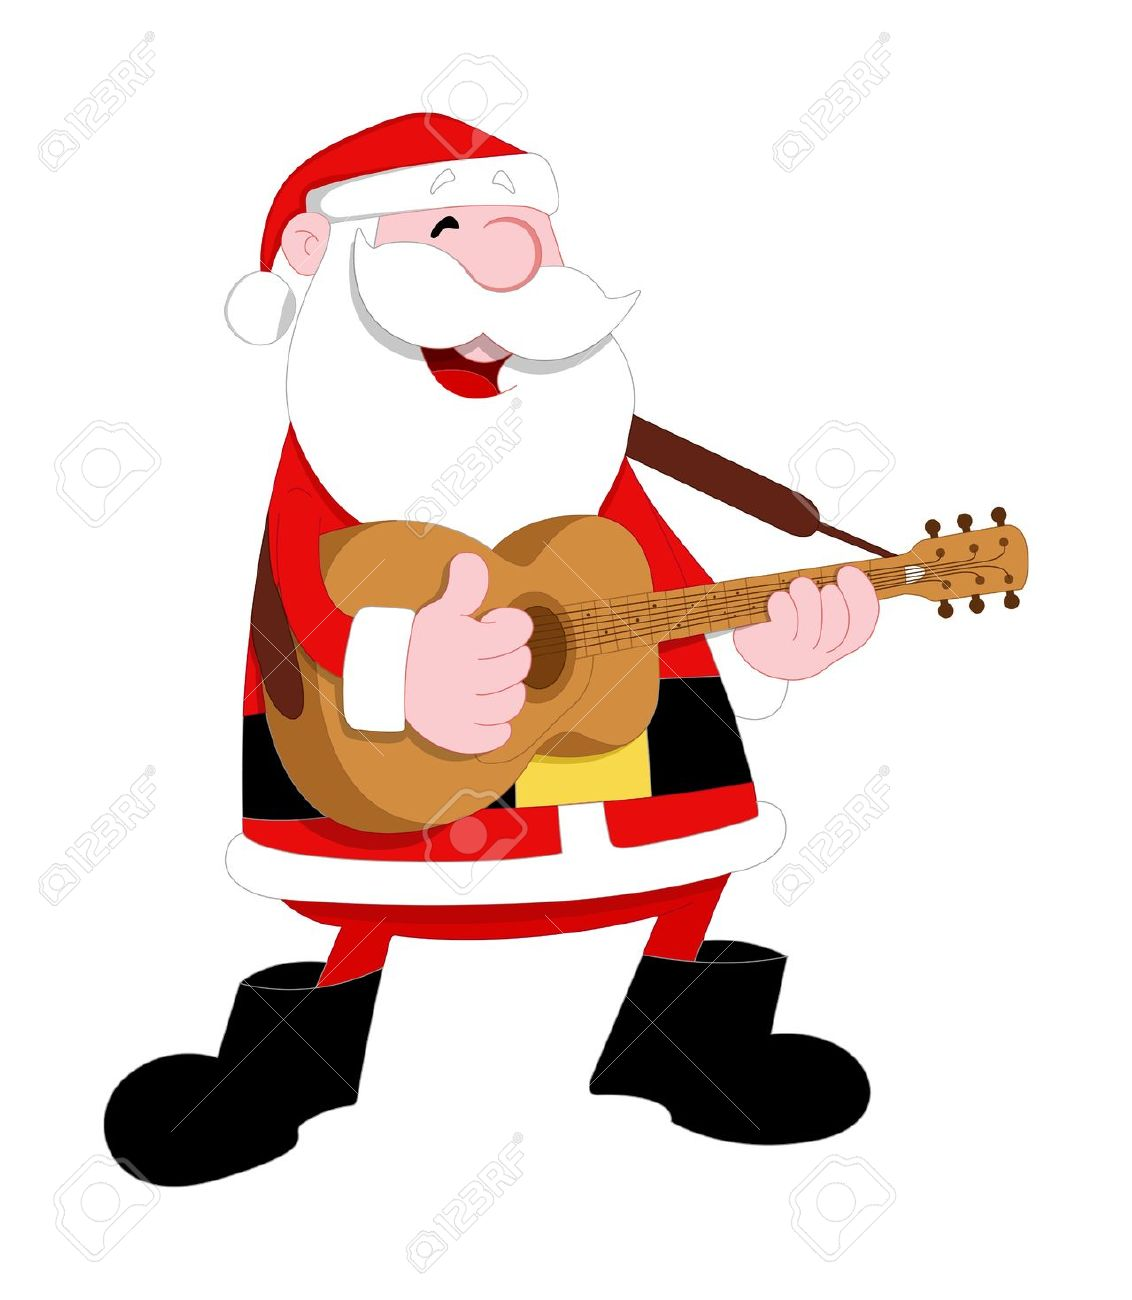 Free santa clipart jpg clip art freeuse stock Free santa playing a guitar clipart jpg - ClipartFest clip art freeuse stock